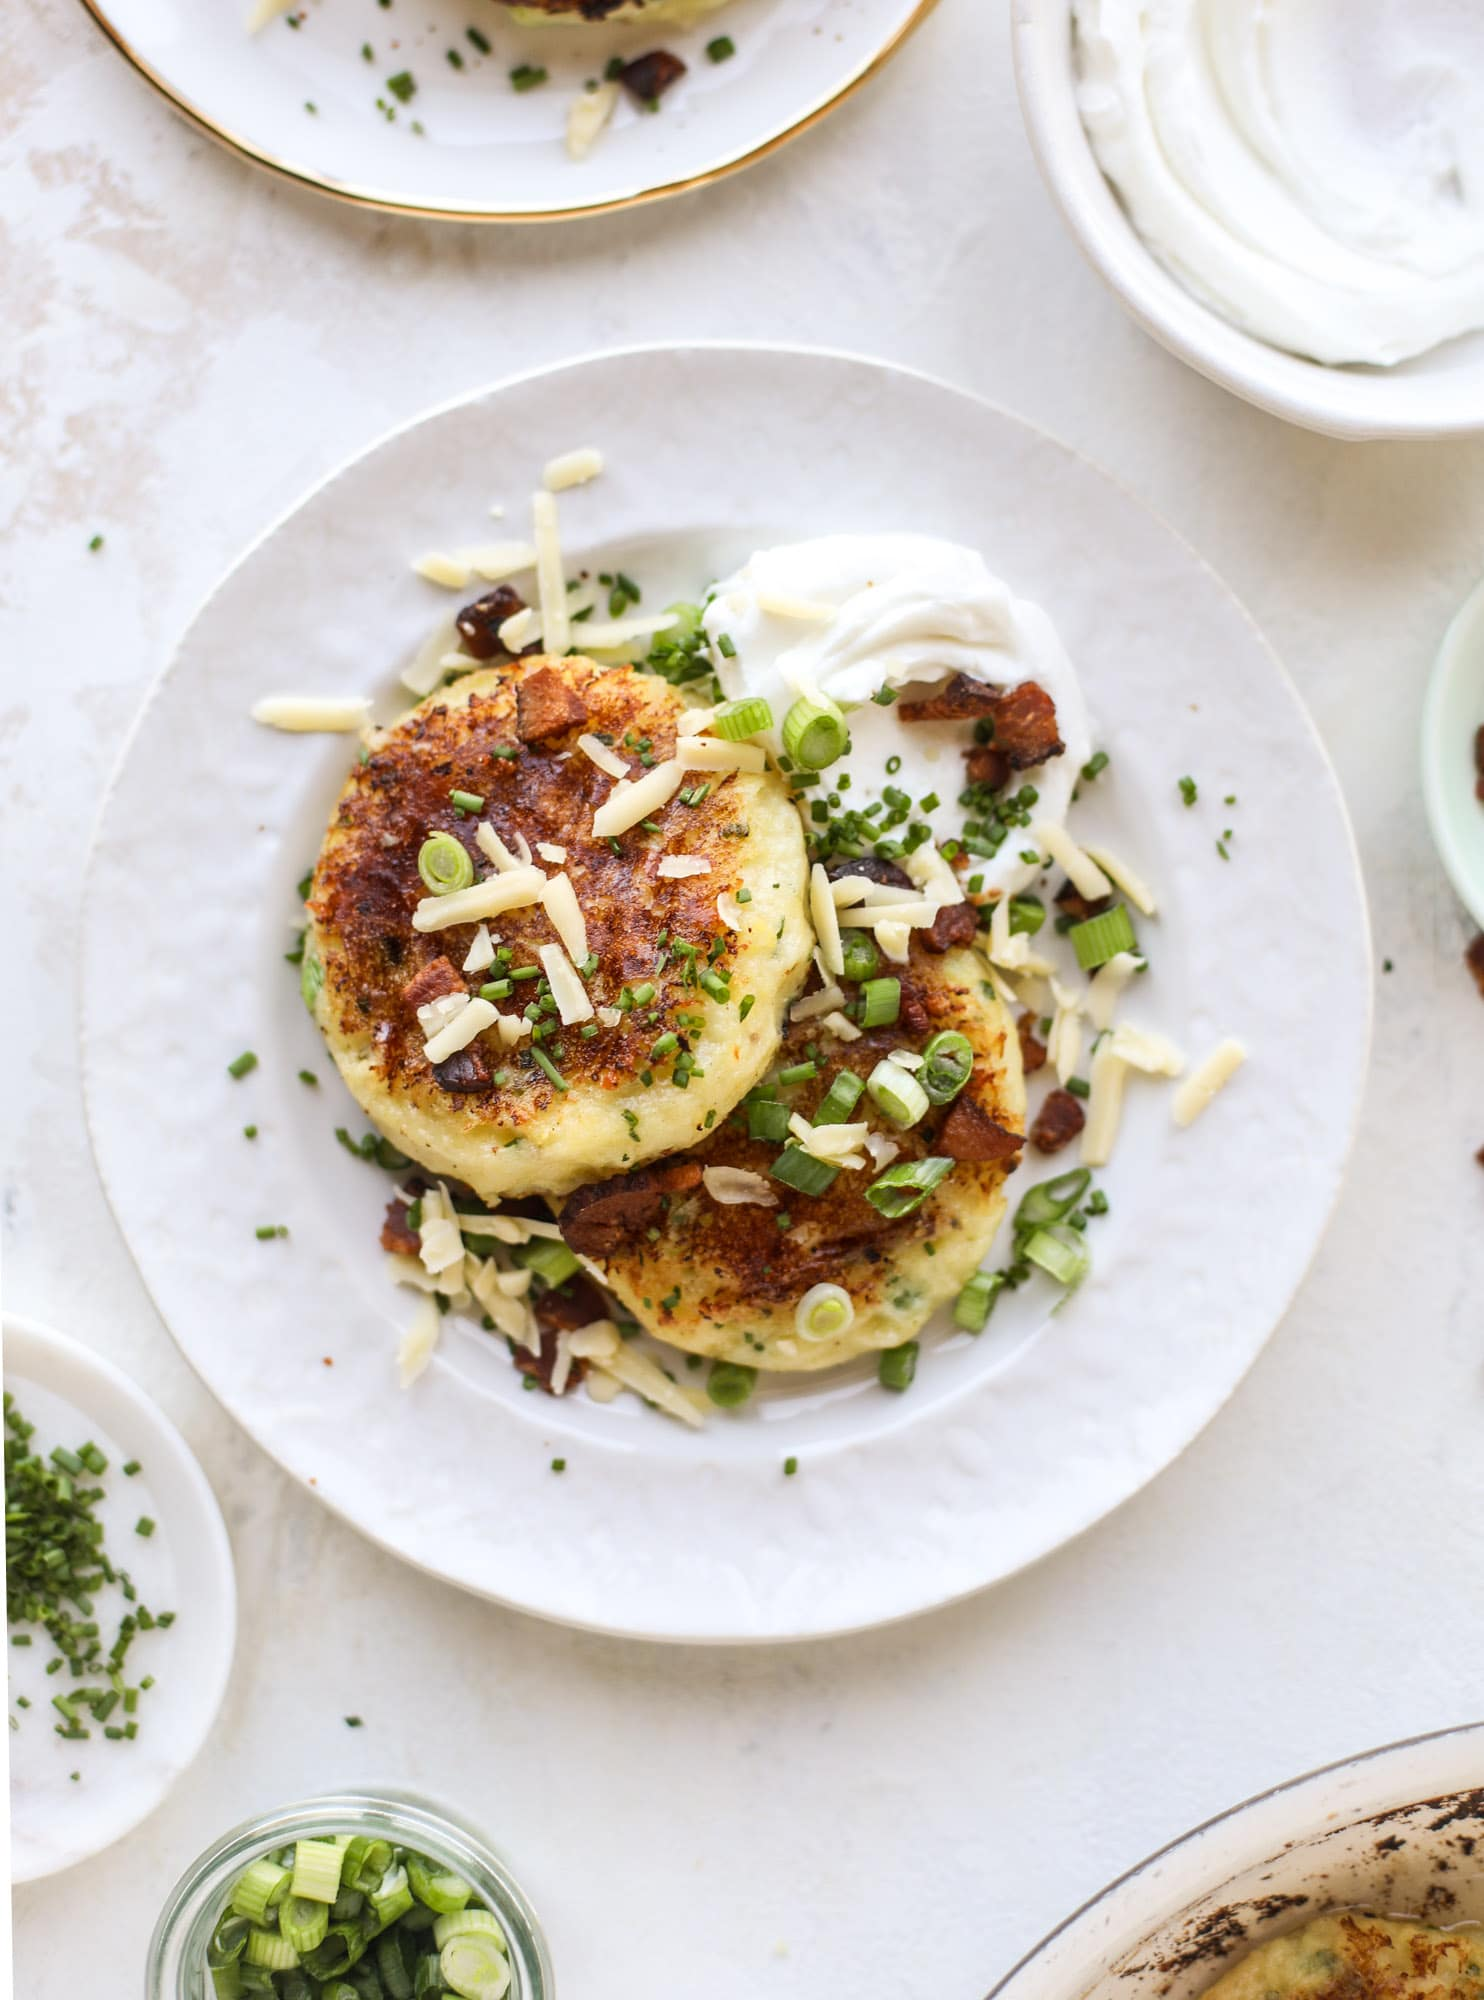 Loaded mashed potato pancakes are the perfect comfort food or side dish to a hearty meat. Crispy mashed potatoes with aged cheddar. Delicious! I howsweeteats.com #mashedpotato #pancakes